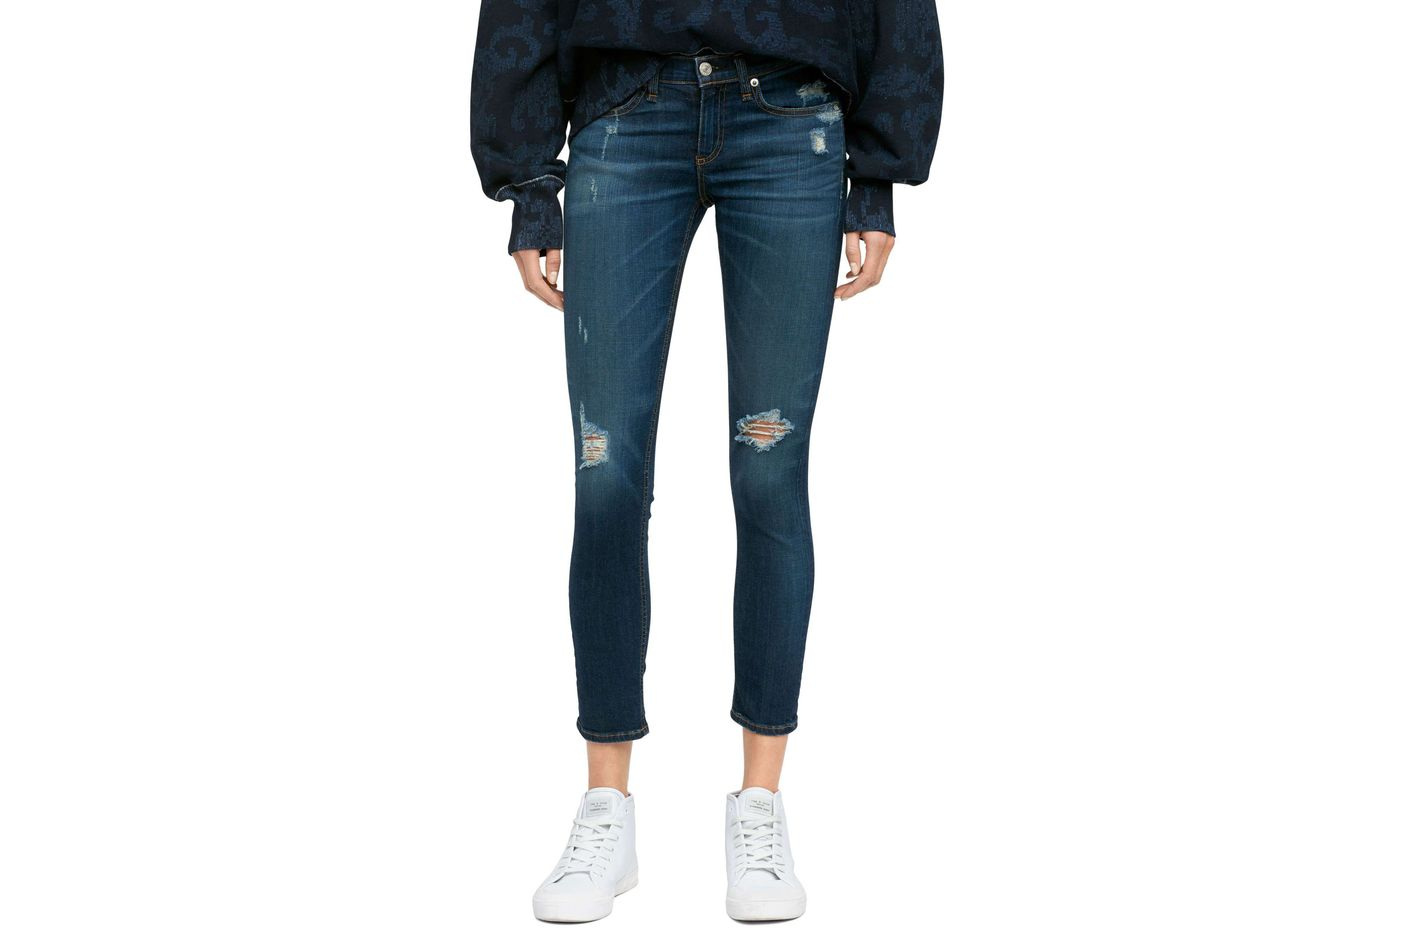 Best distressed petite jeans